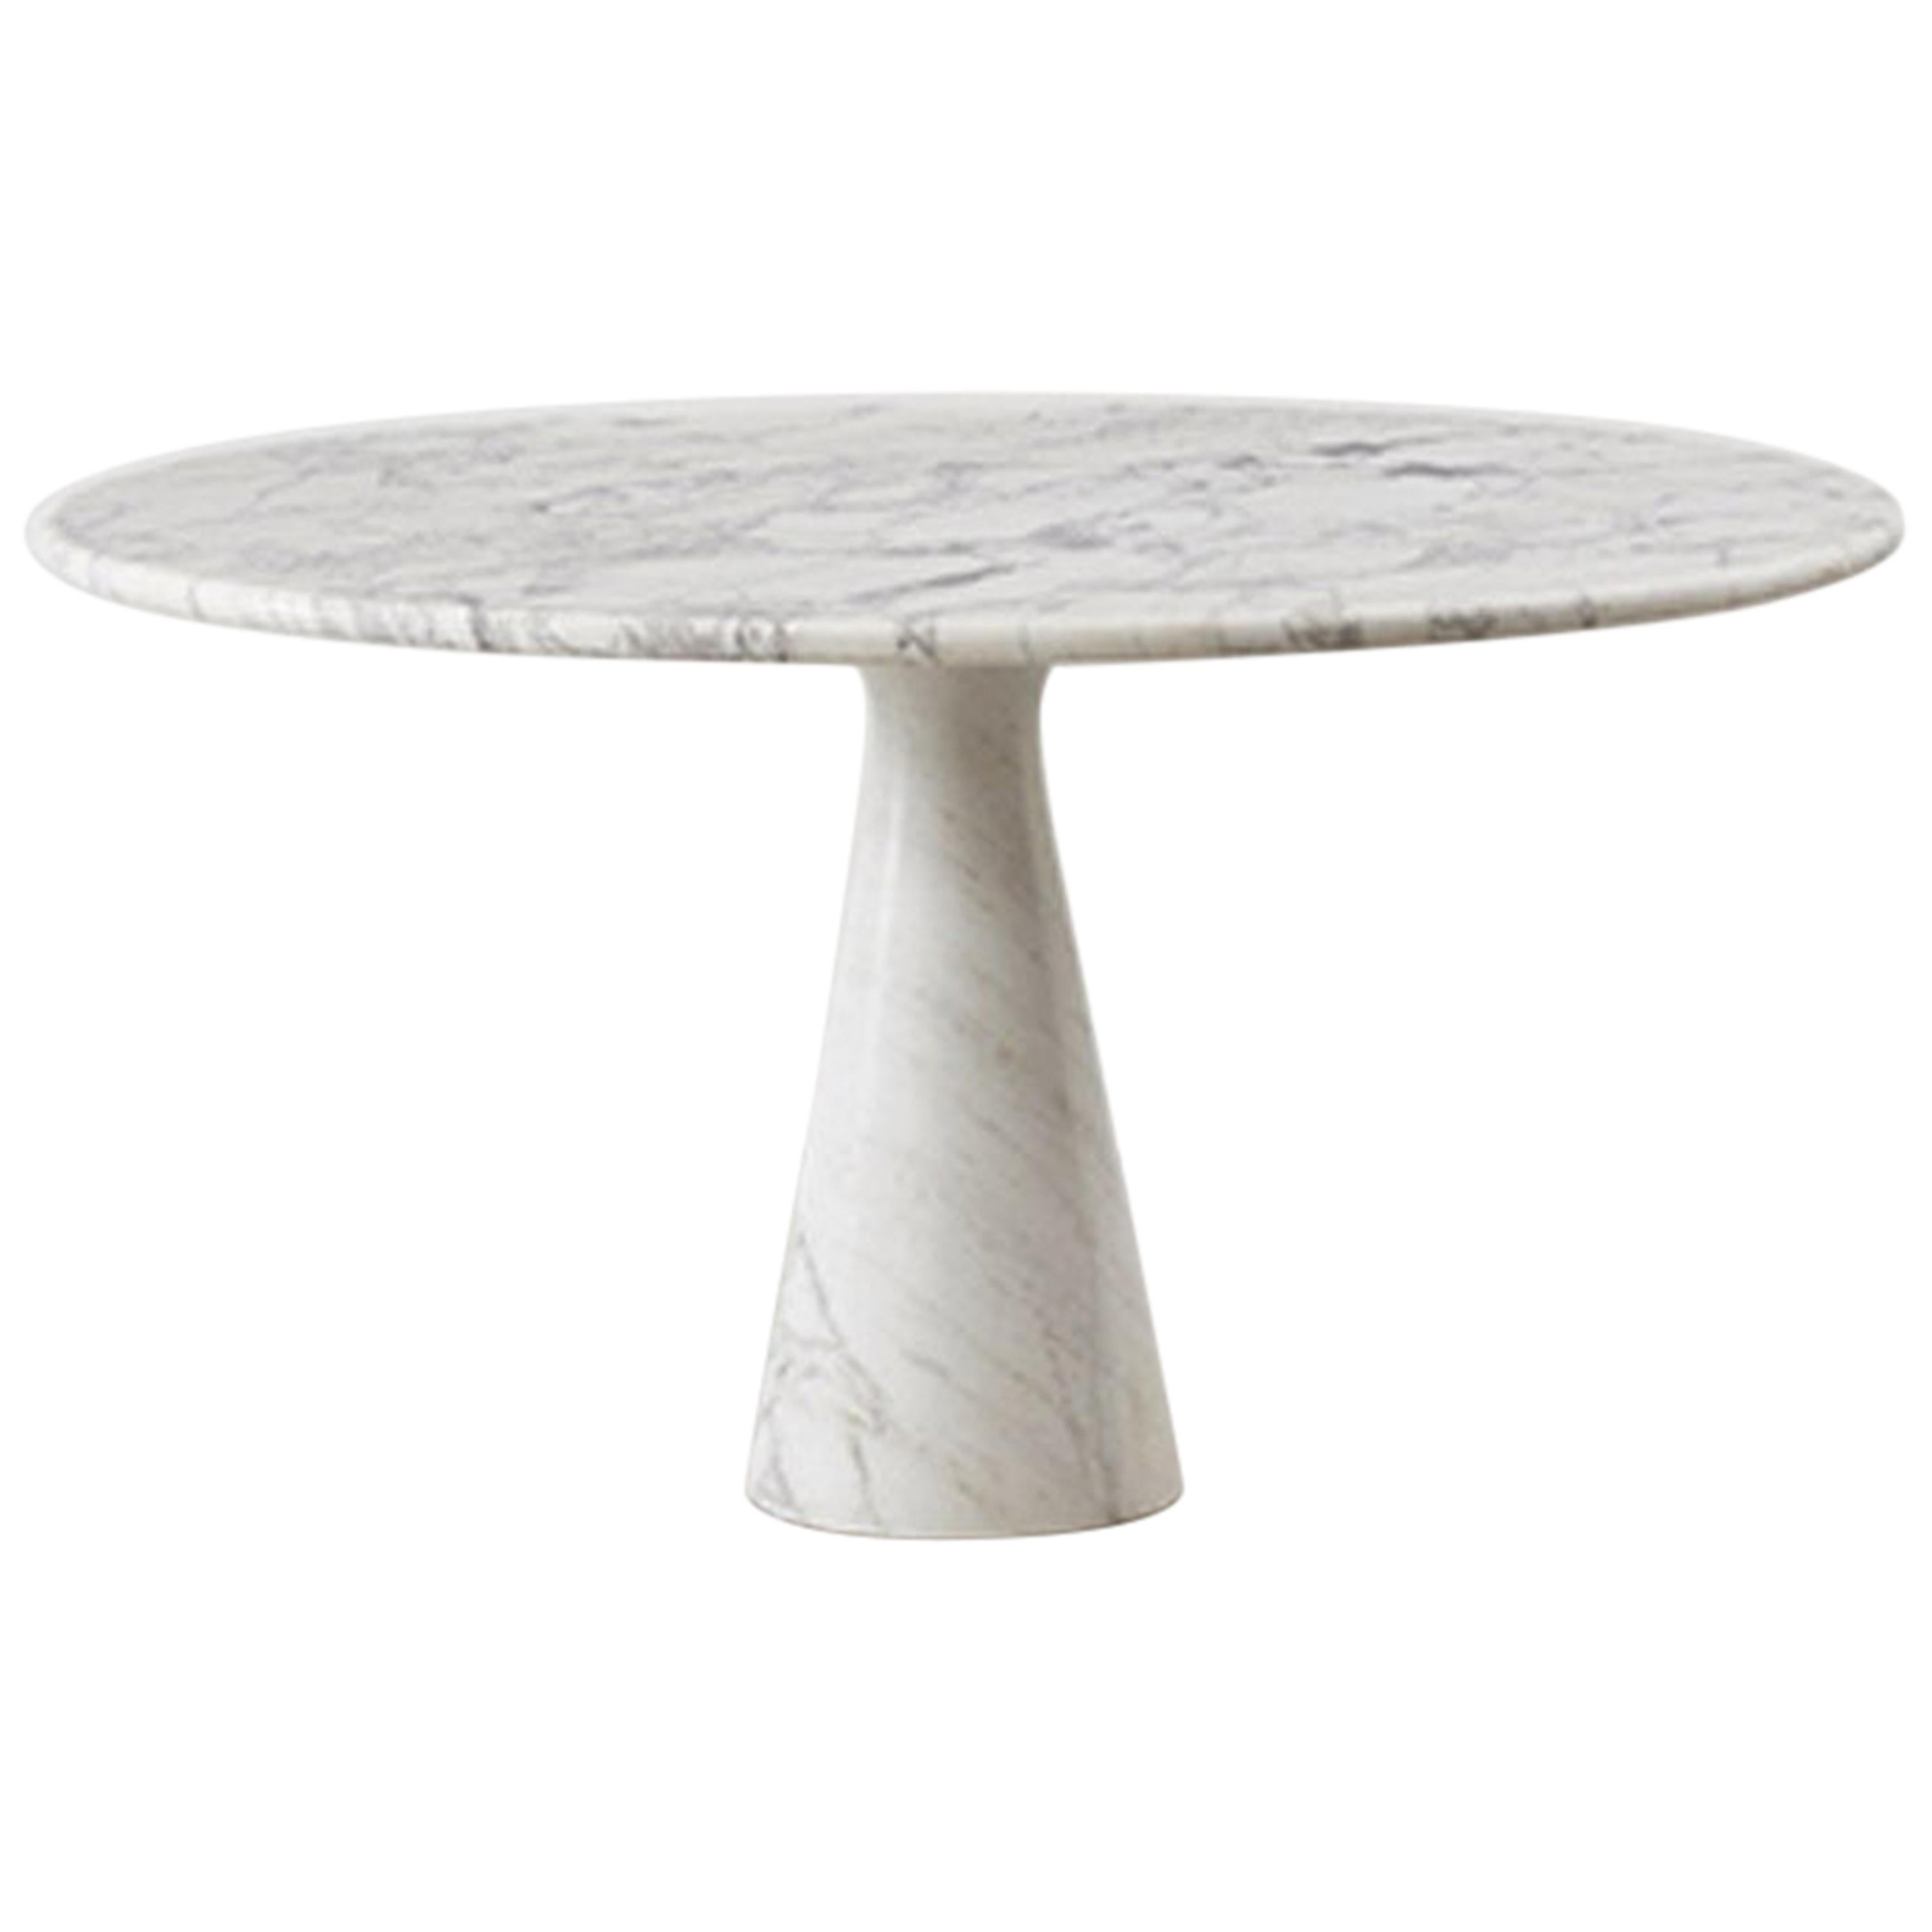 Angelo Mangiarotti M1 T70 Dining Table for Skipper, Italy, 1969